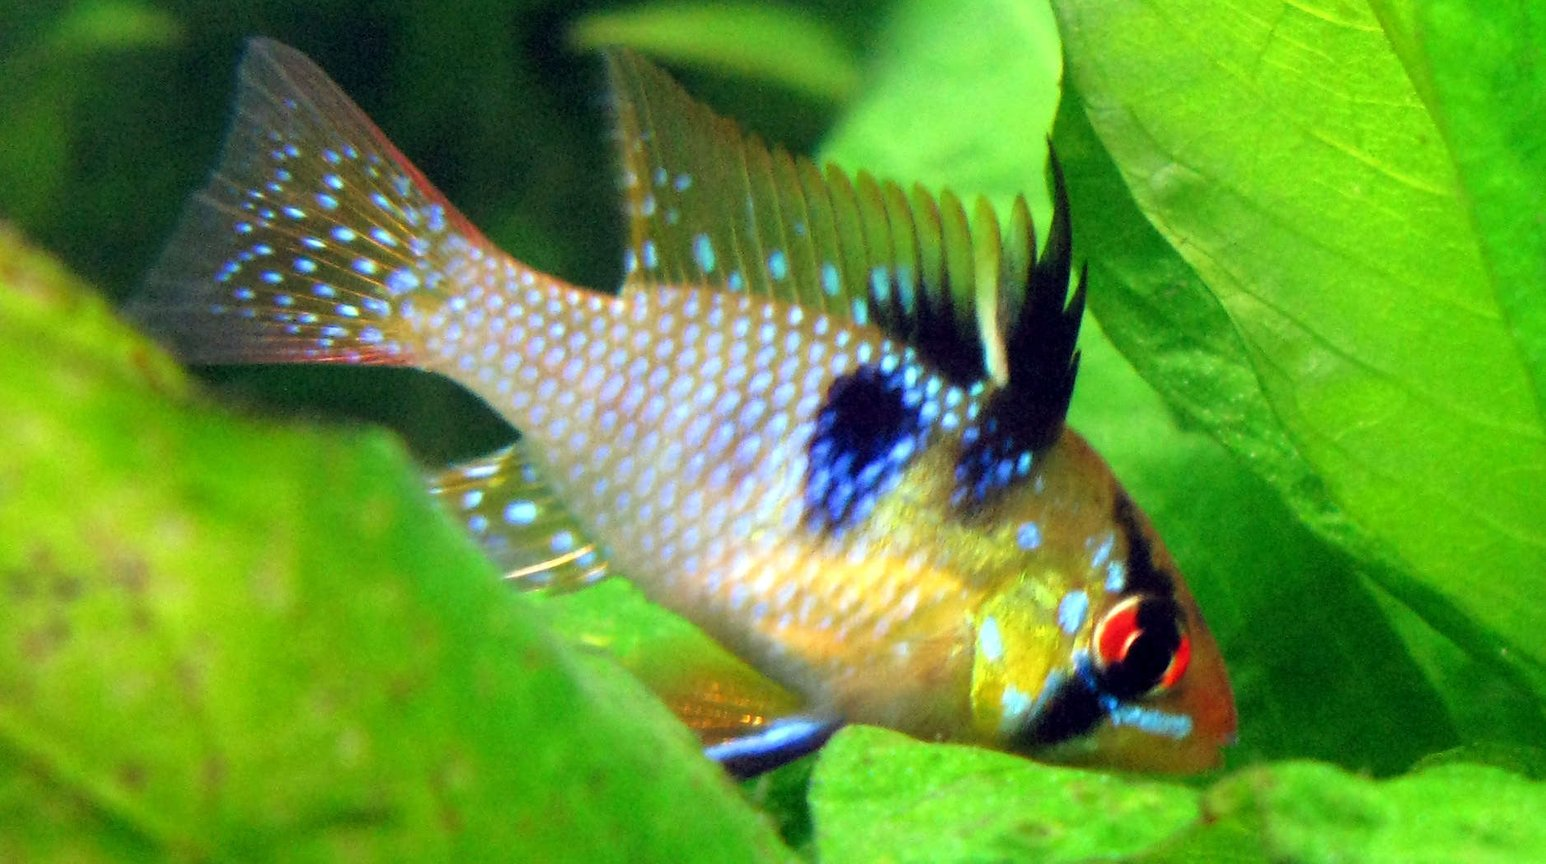 freshwater fish - papiliochromis ramirezi - german blue ram stocking in 44 gallons tank - Blue Ram looking for leftover bloodworms